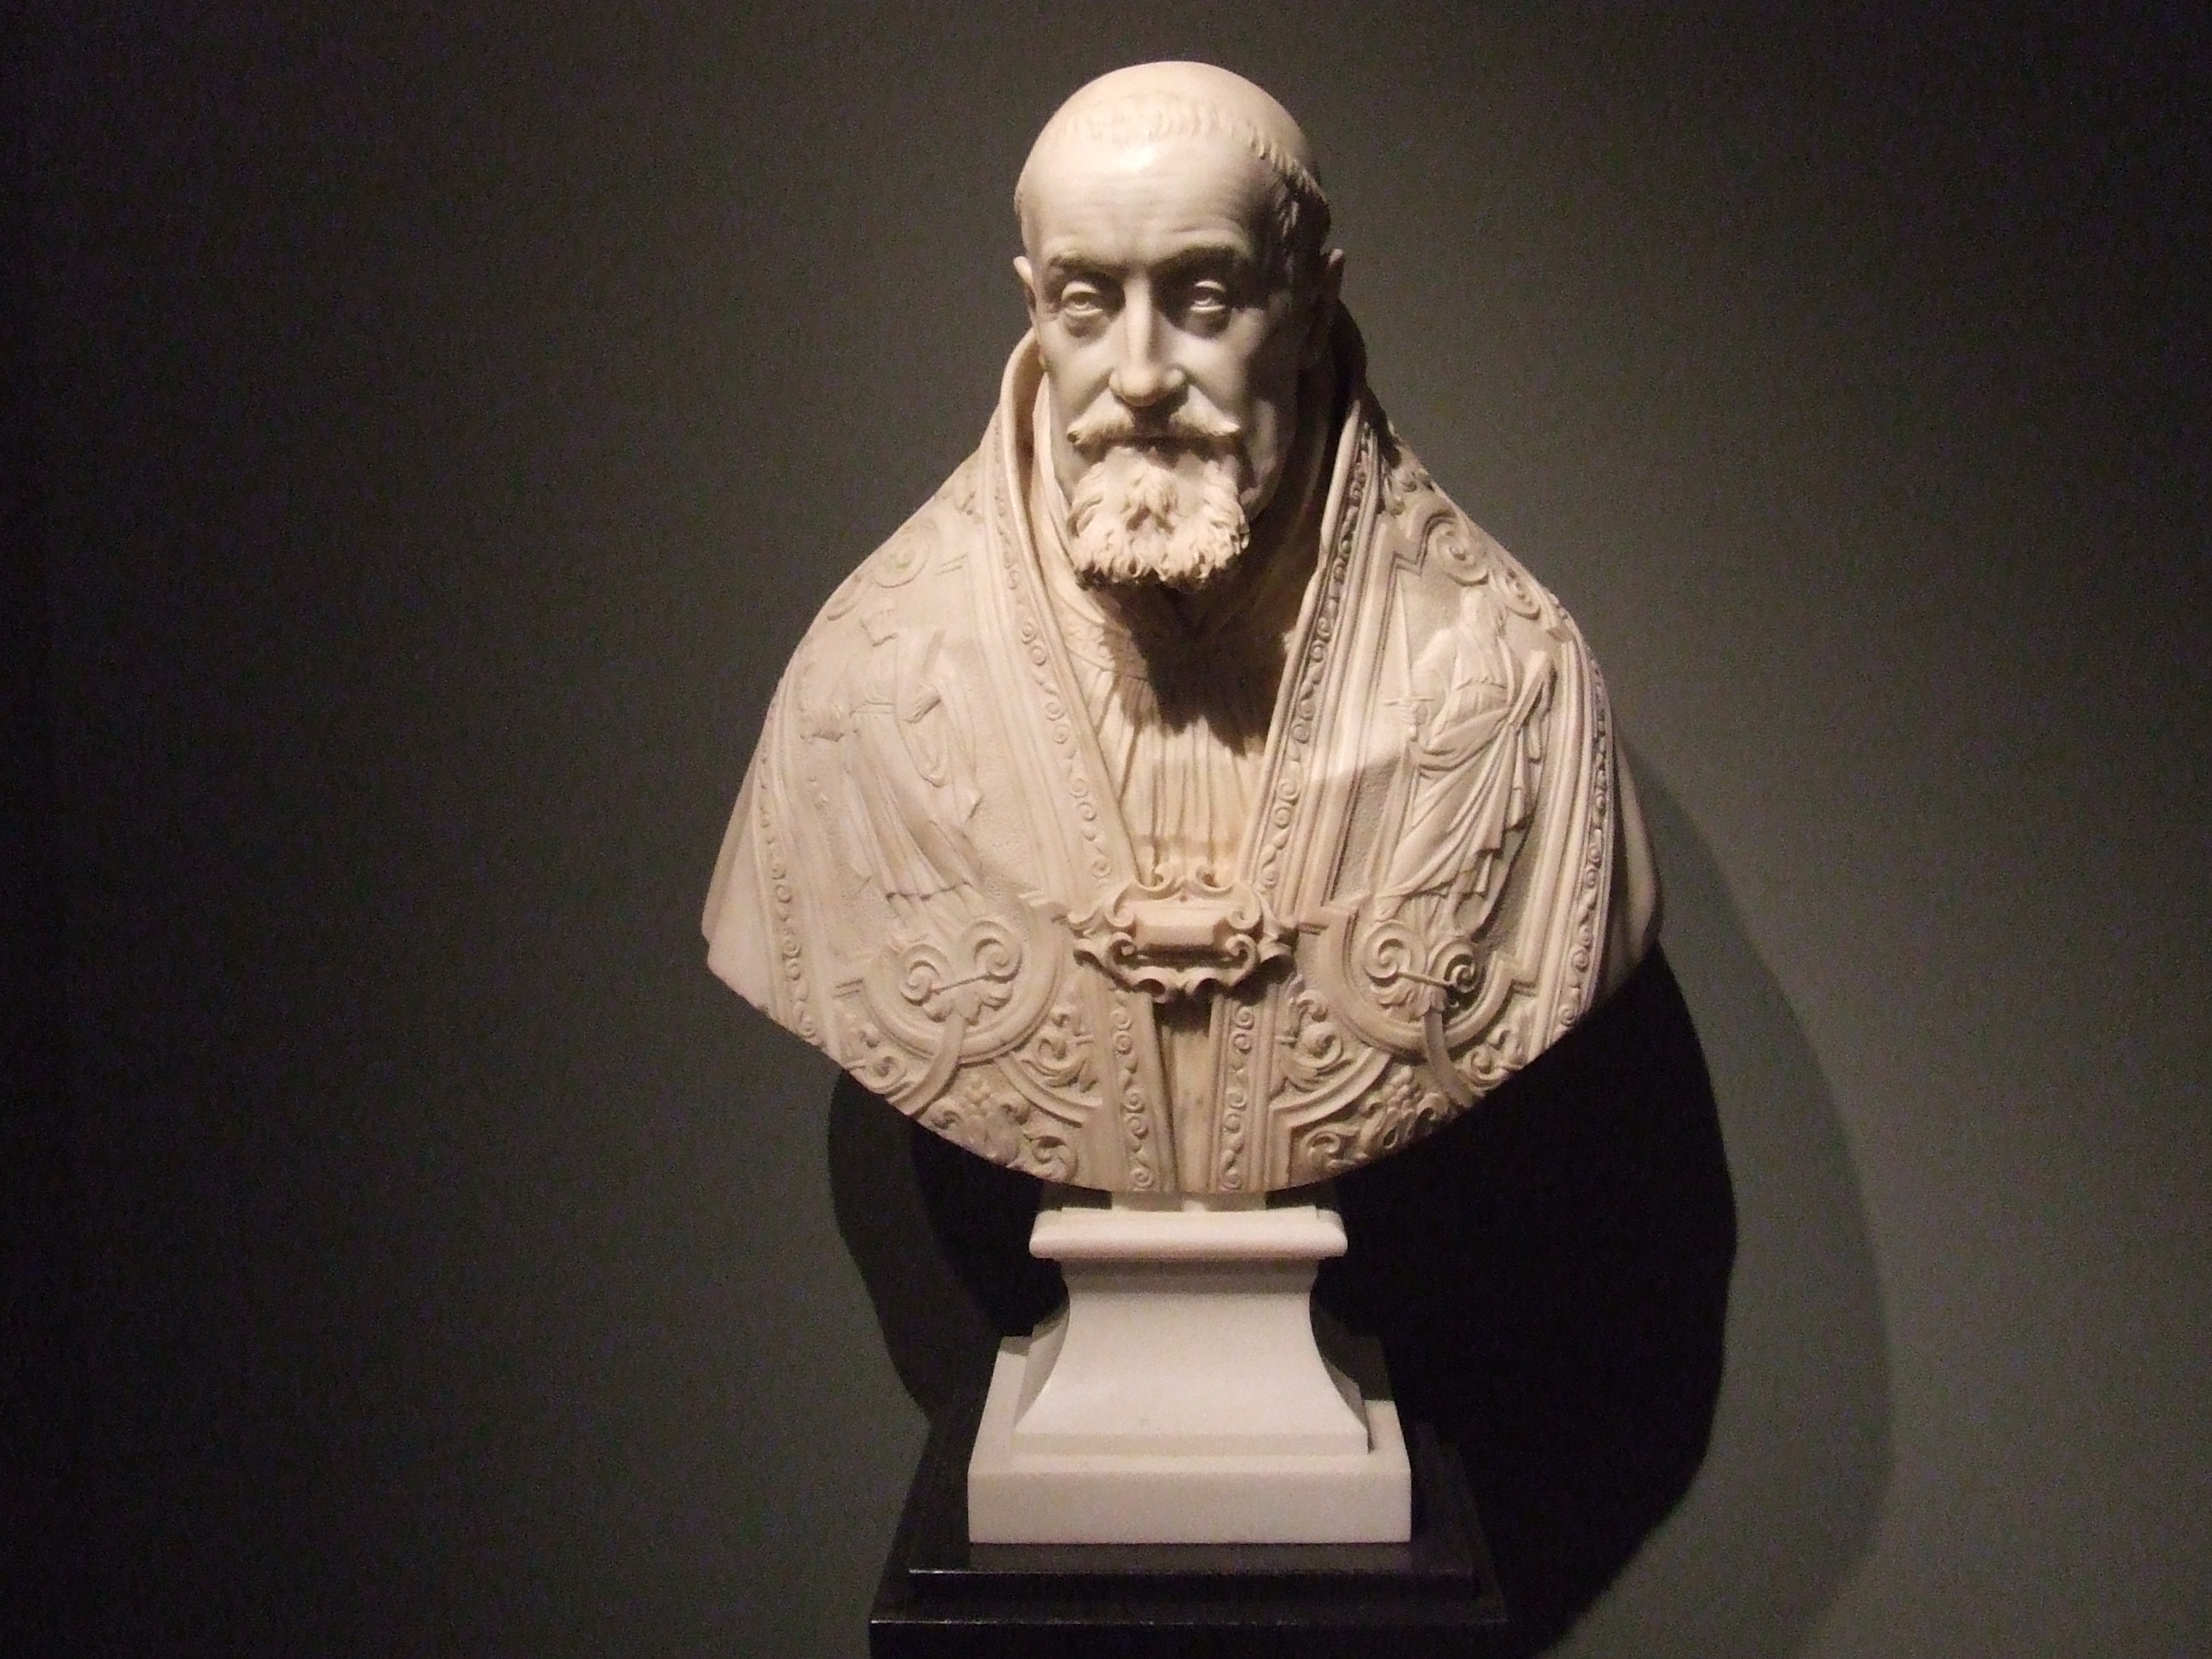 file pope gregorius xv sculpture by gian lorenzo bernini jpg file pope gregorius xv sculpture by gian lorenzo bernini jpg